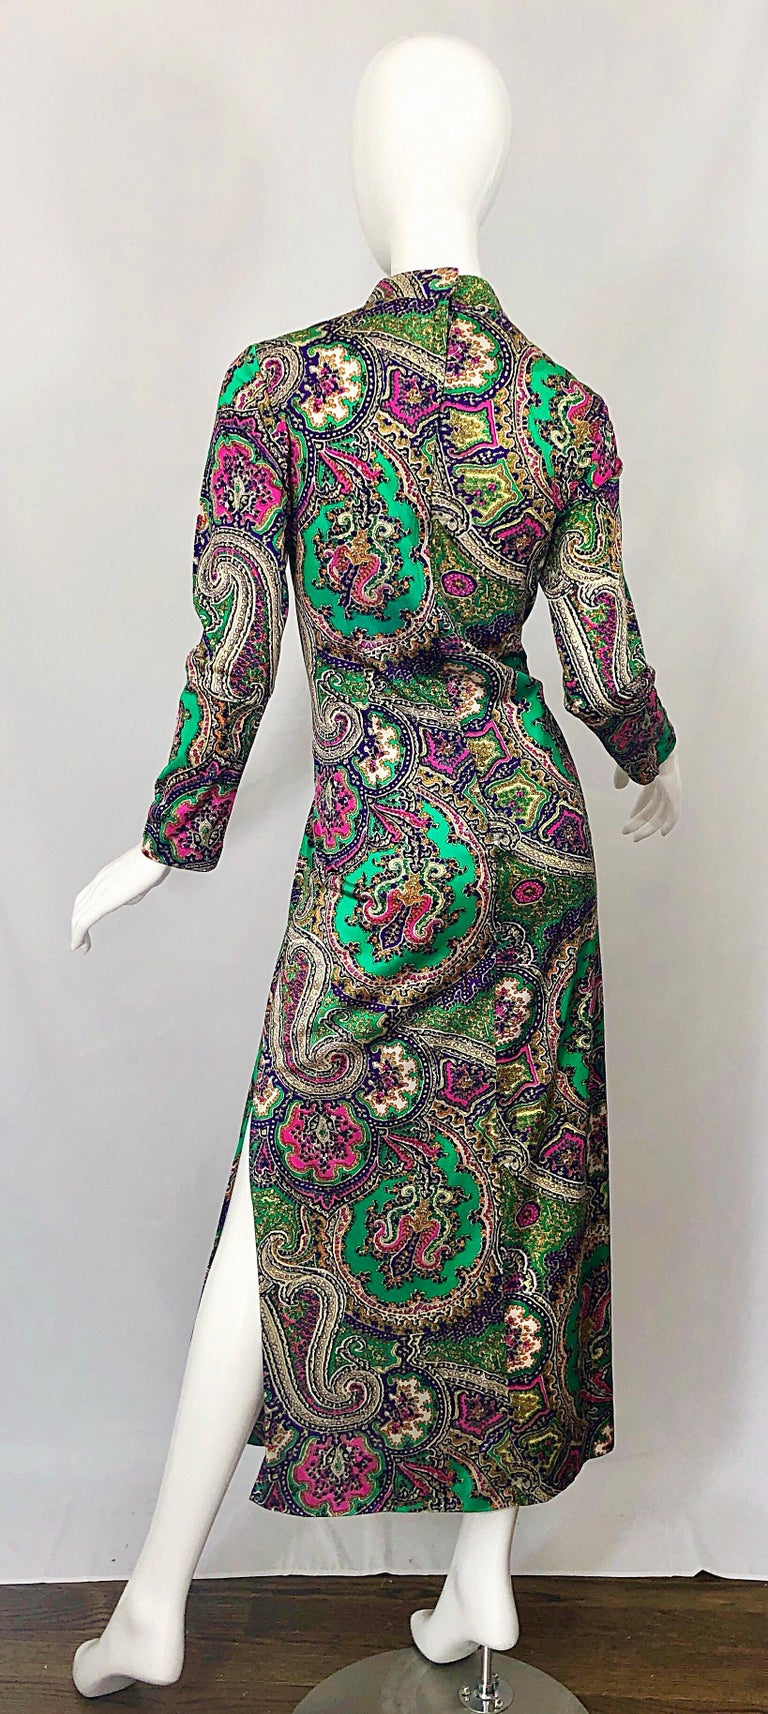 Women's 1970s Cheongsam Inspired Colorful Paisley Print Jersey Long Sleeve Maxi Dress For Sale